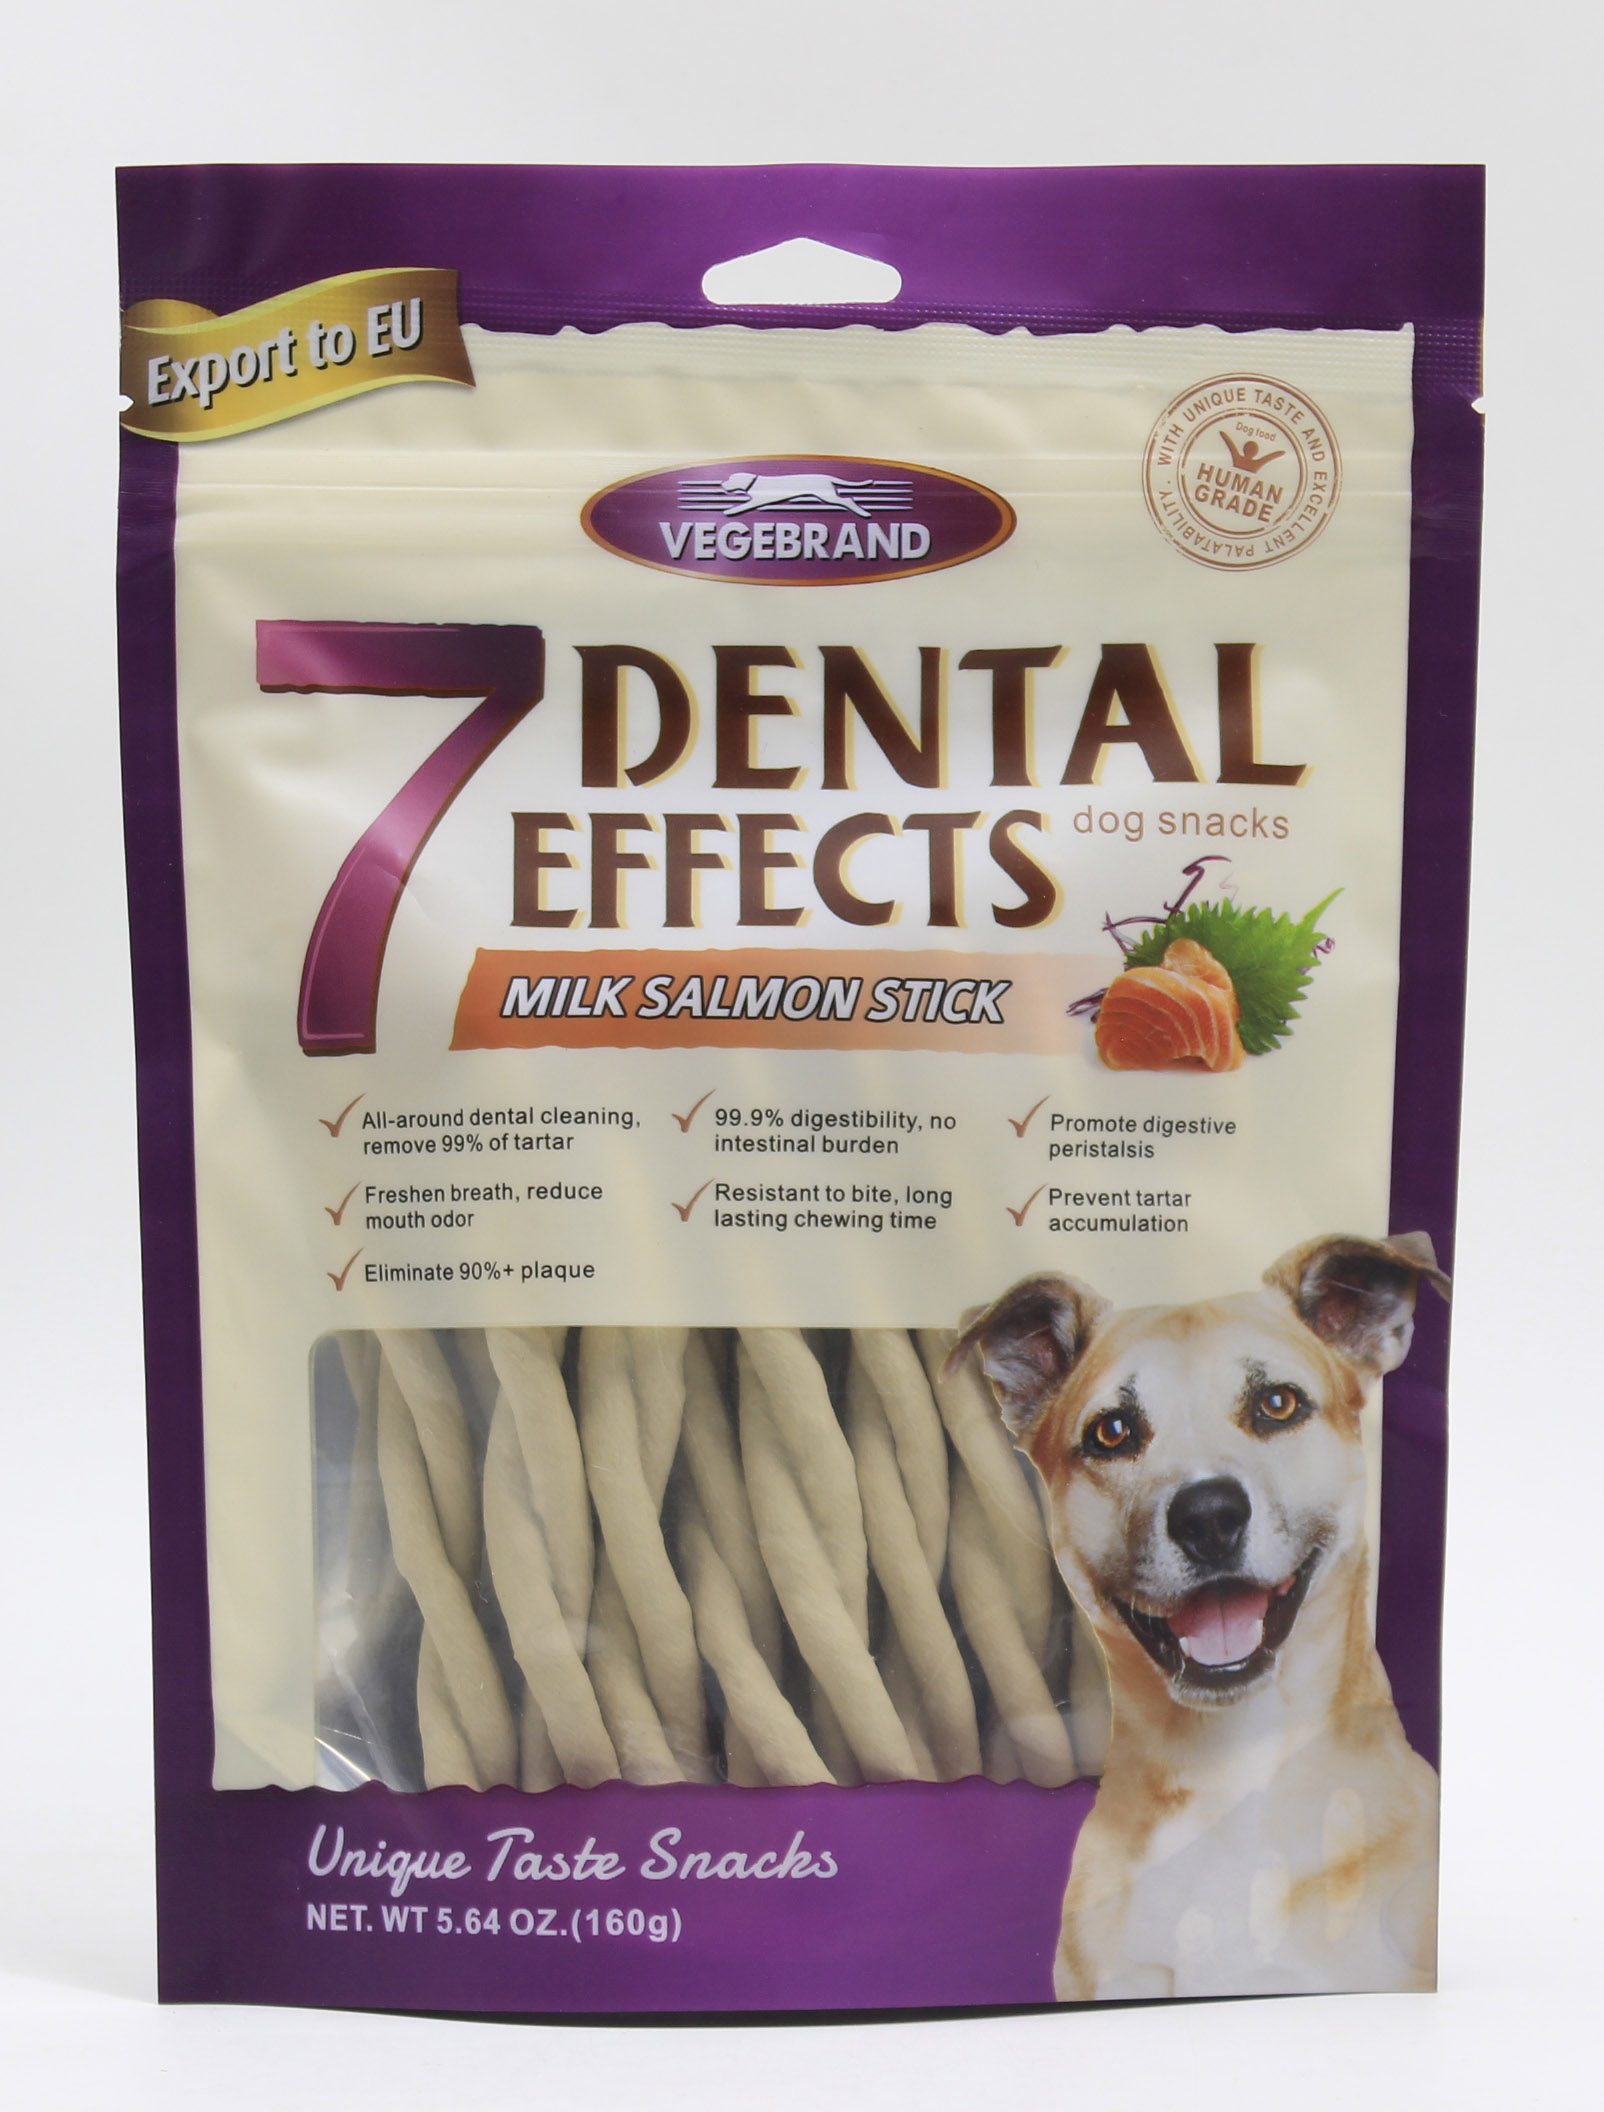 Avocado-Like Twist Dog chews